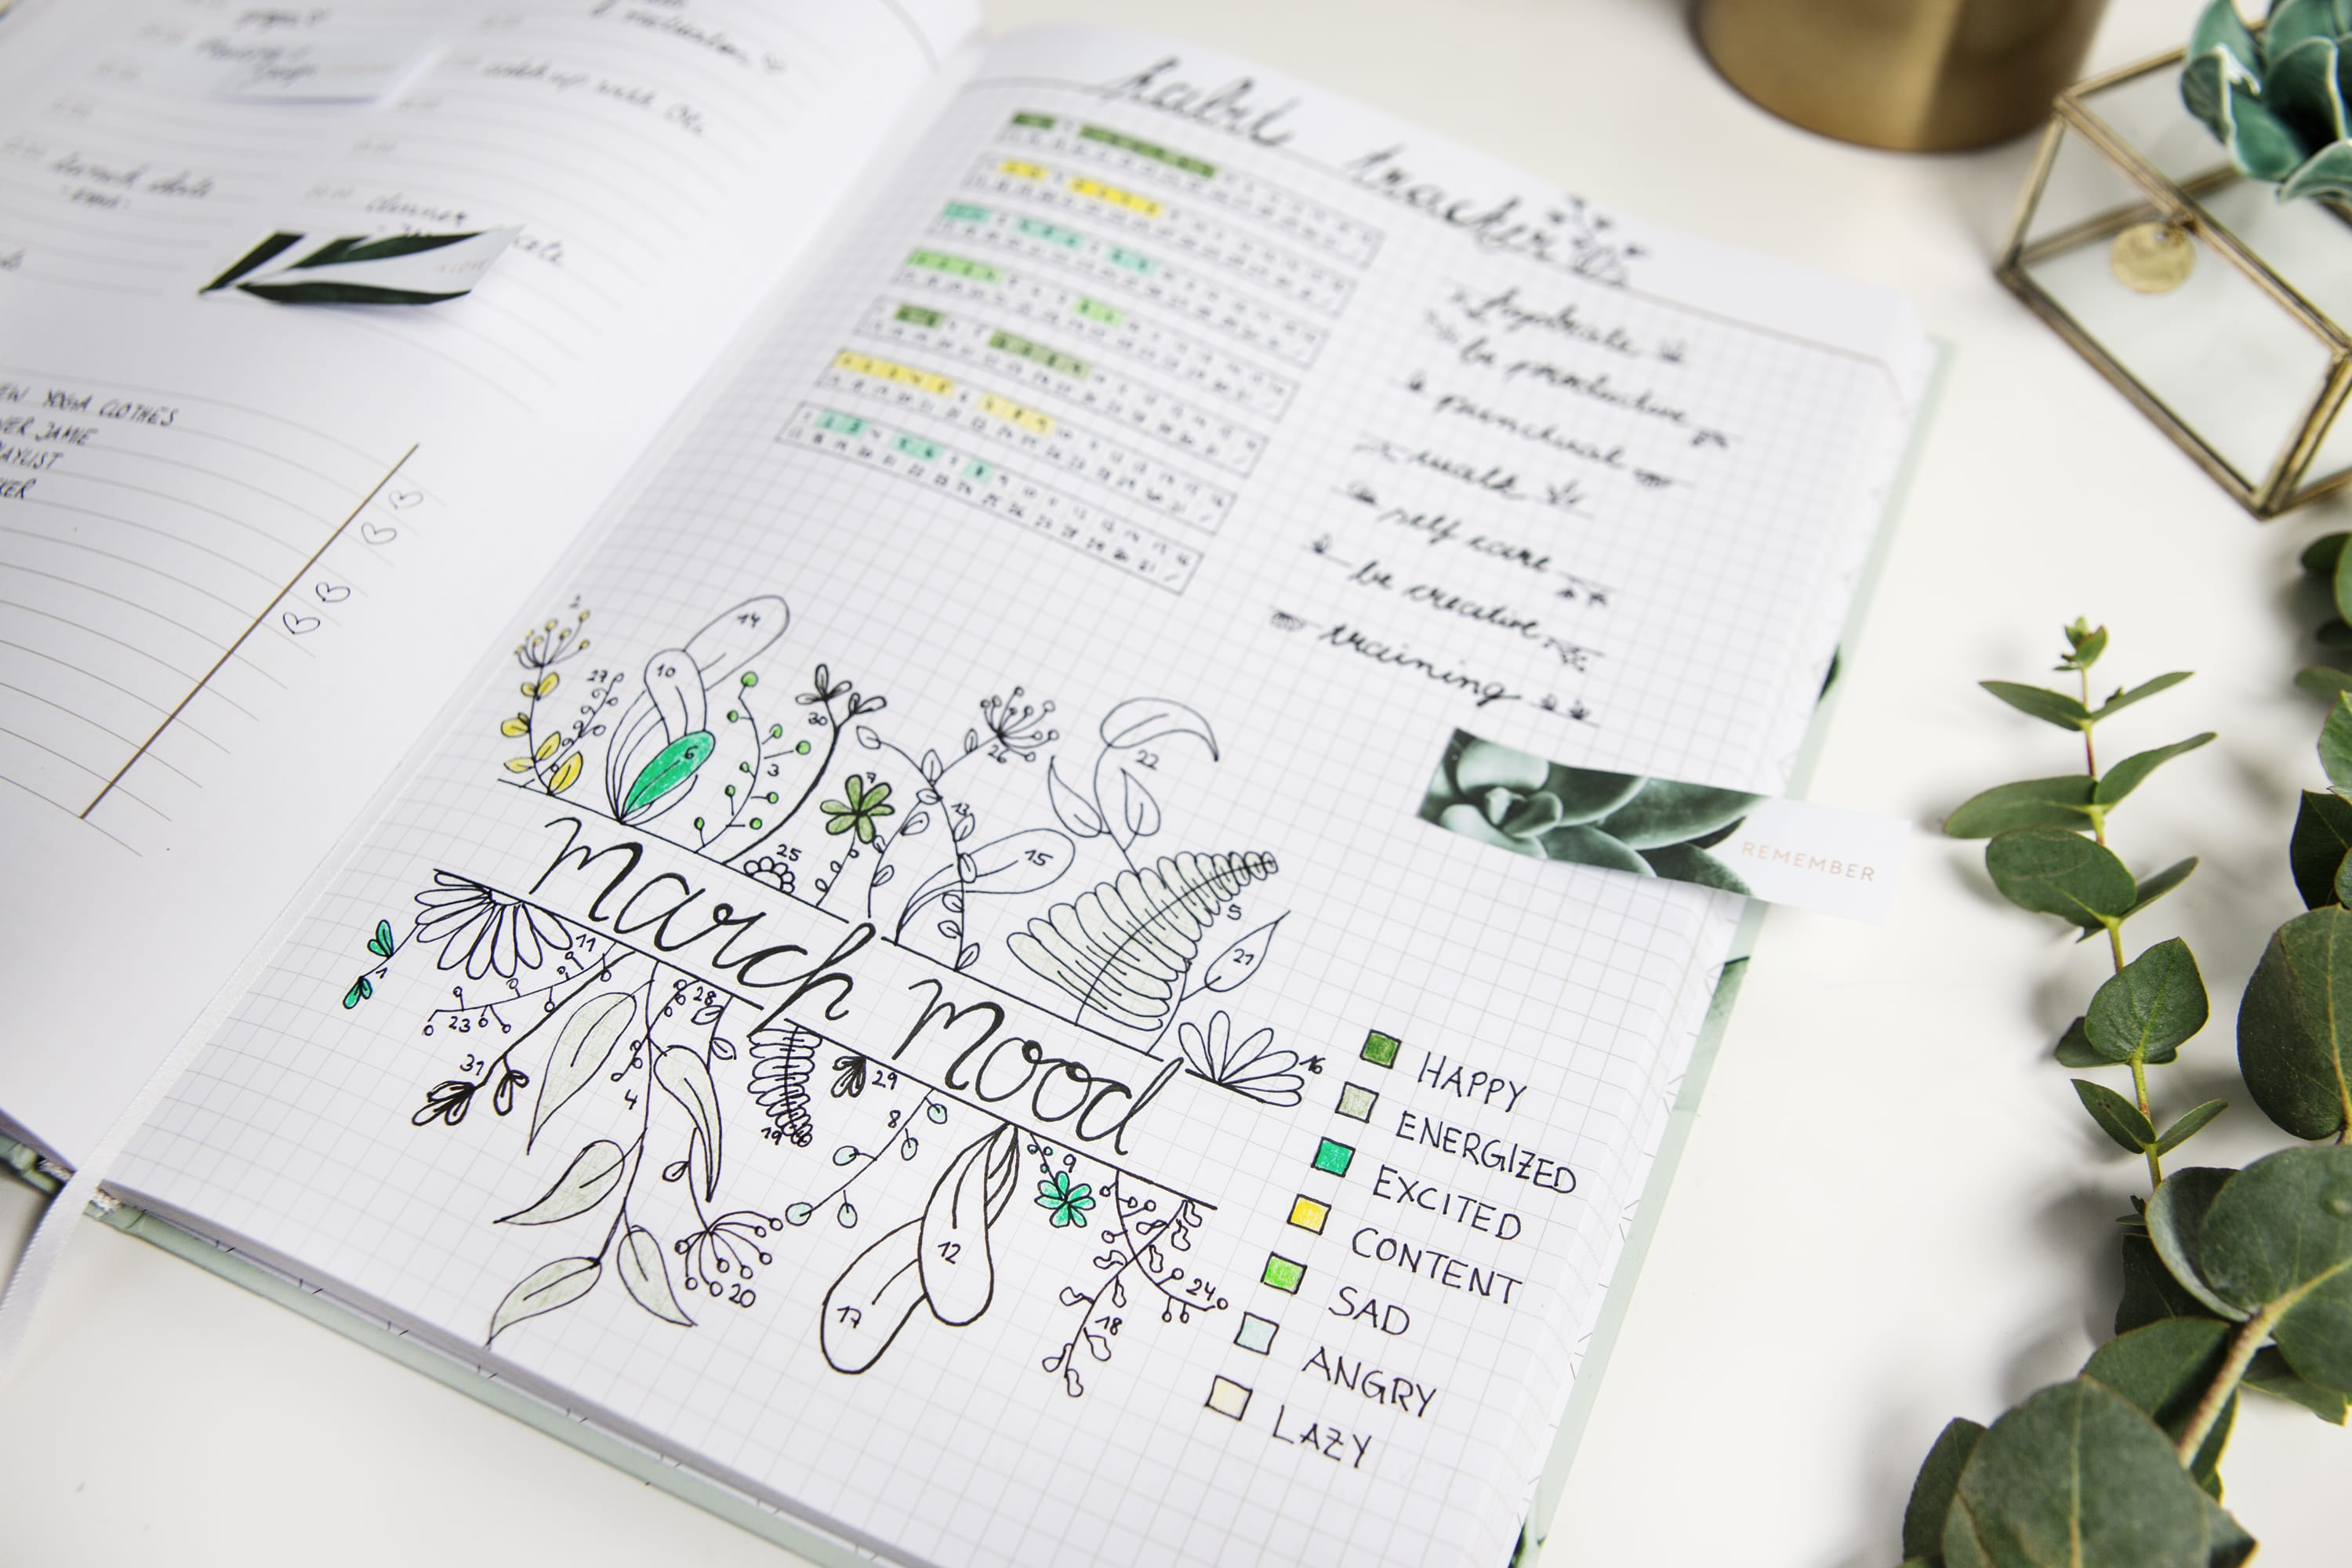 JO_and_JUDY_Blog_Daily_Planner_green_035aa13d5e84137